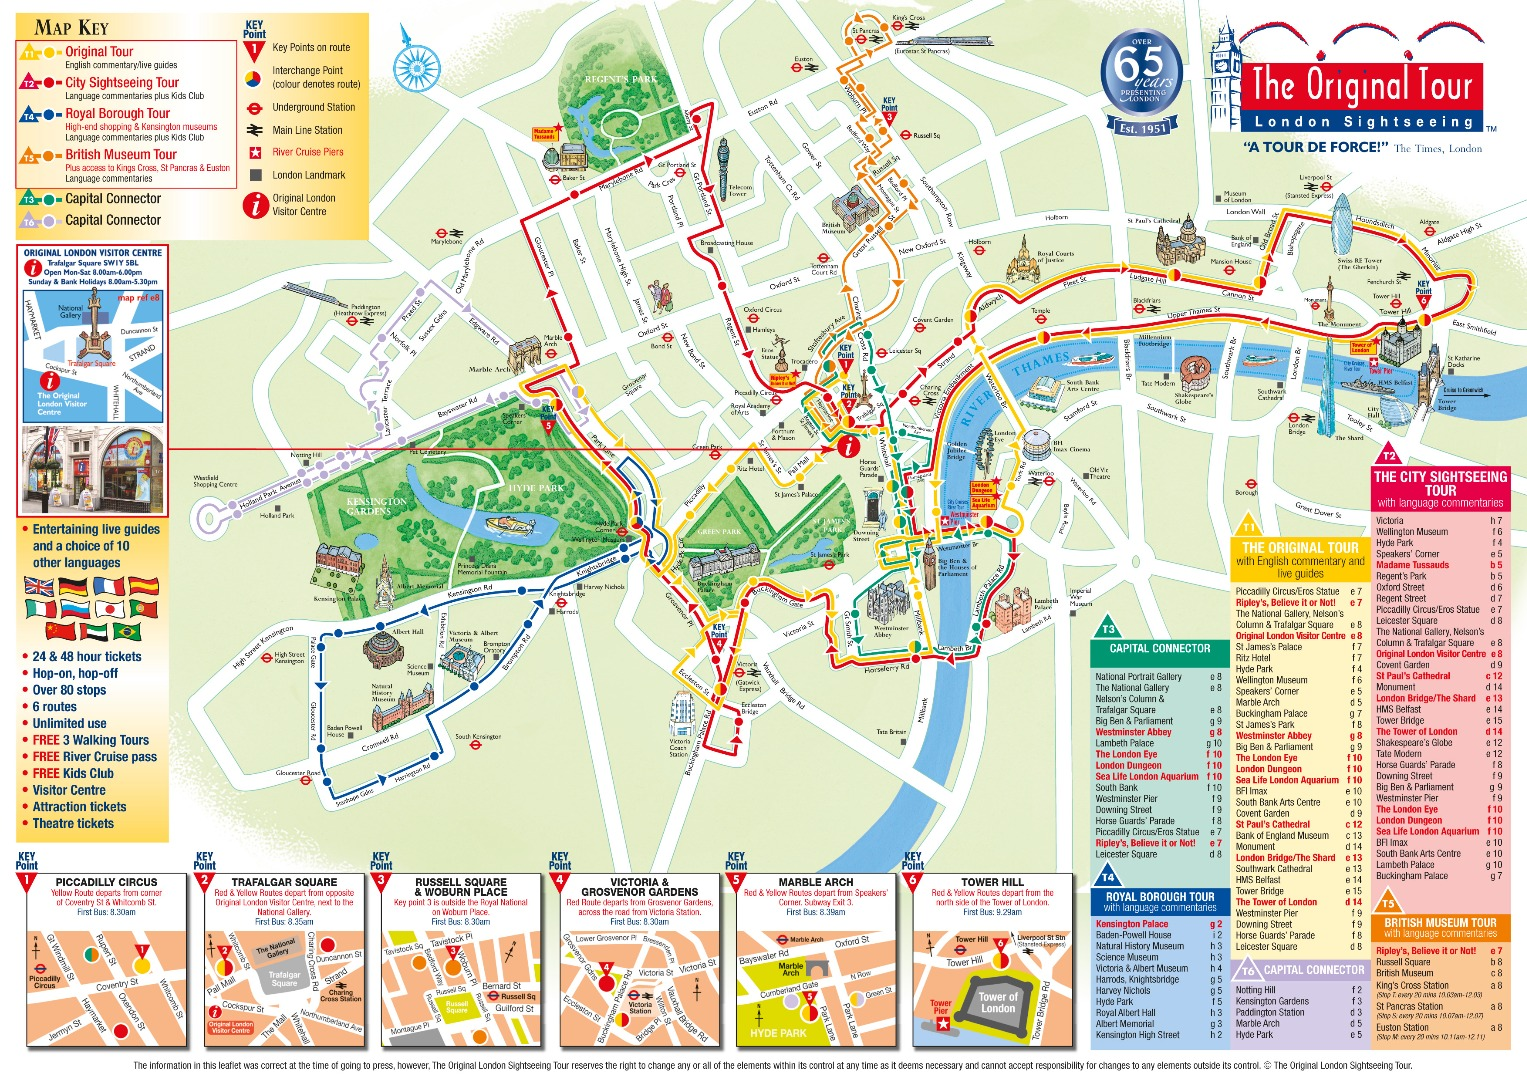 The Original London Sightseeing Bus Map